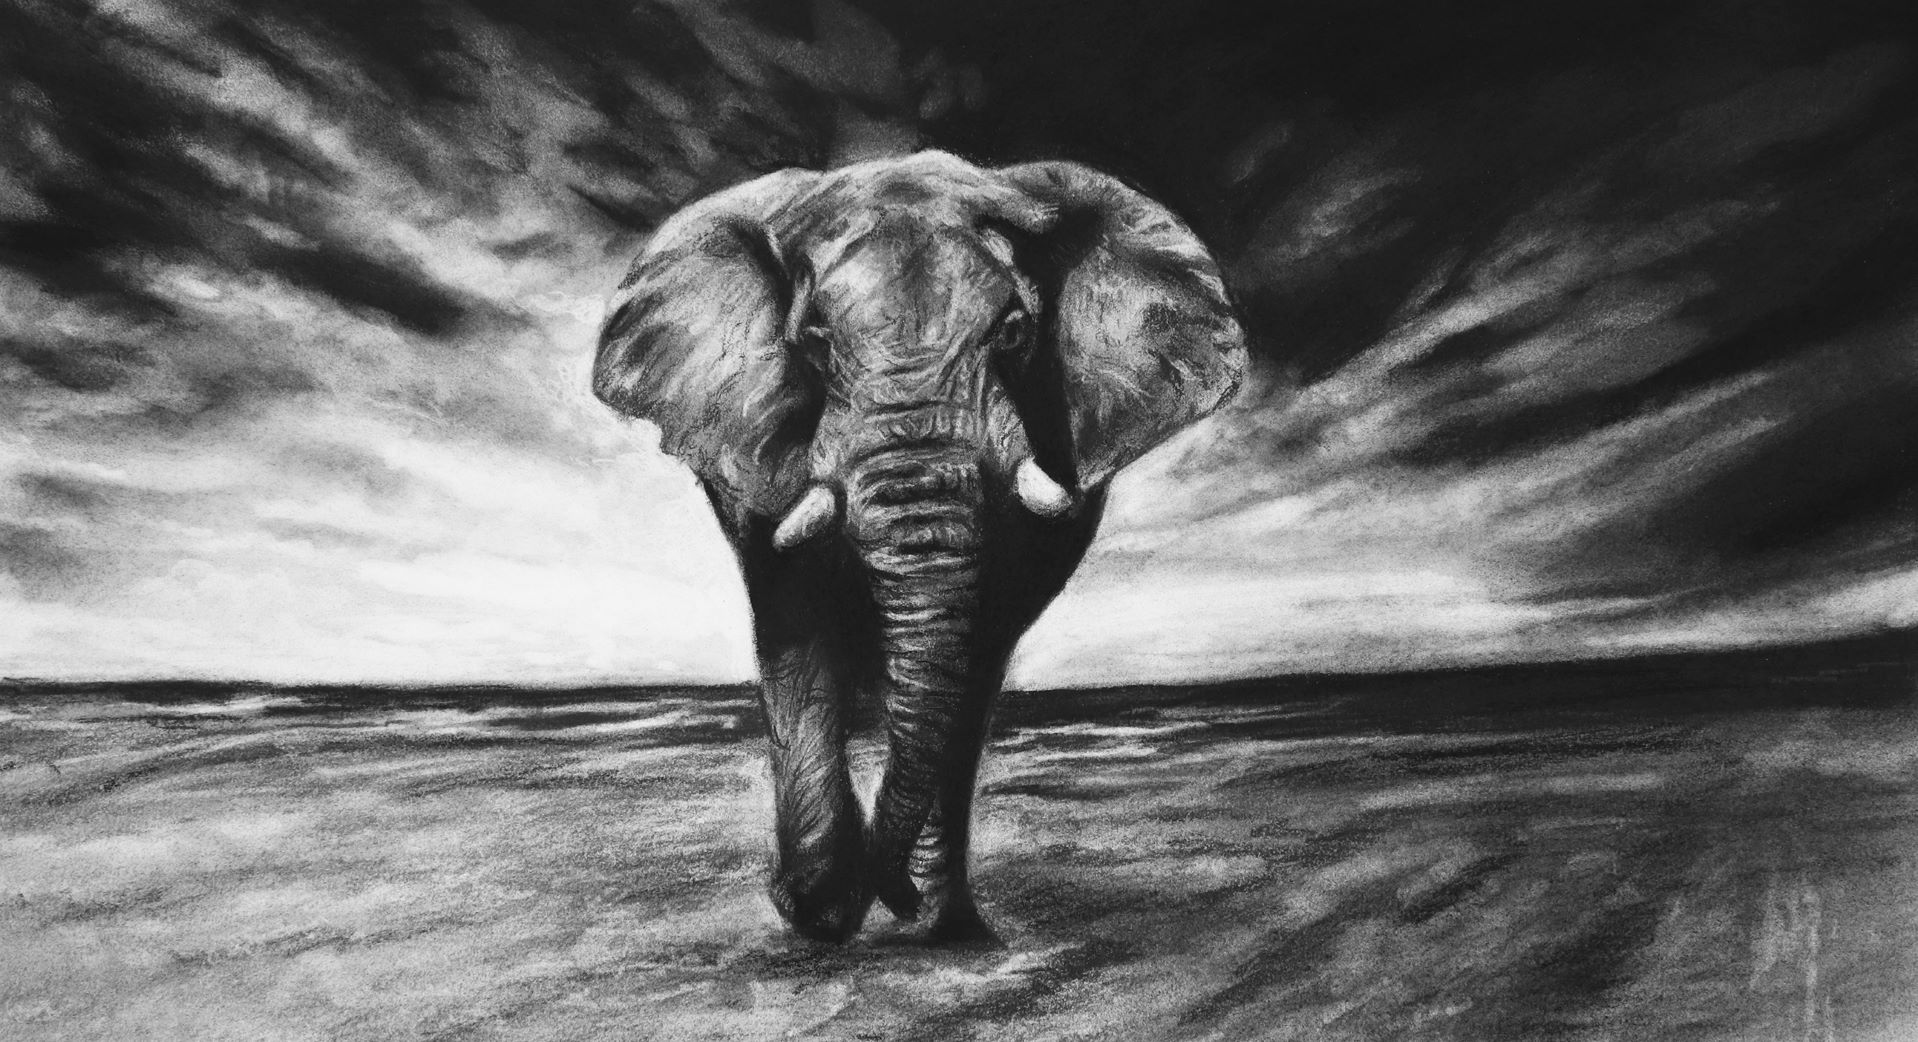 Charcoal Shading and Blending Tips - Strathmore Artist Papers